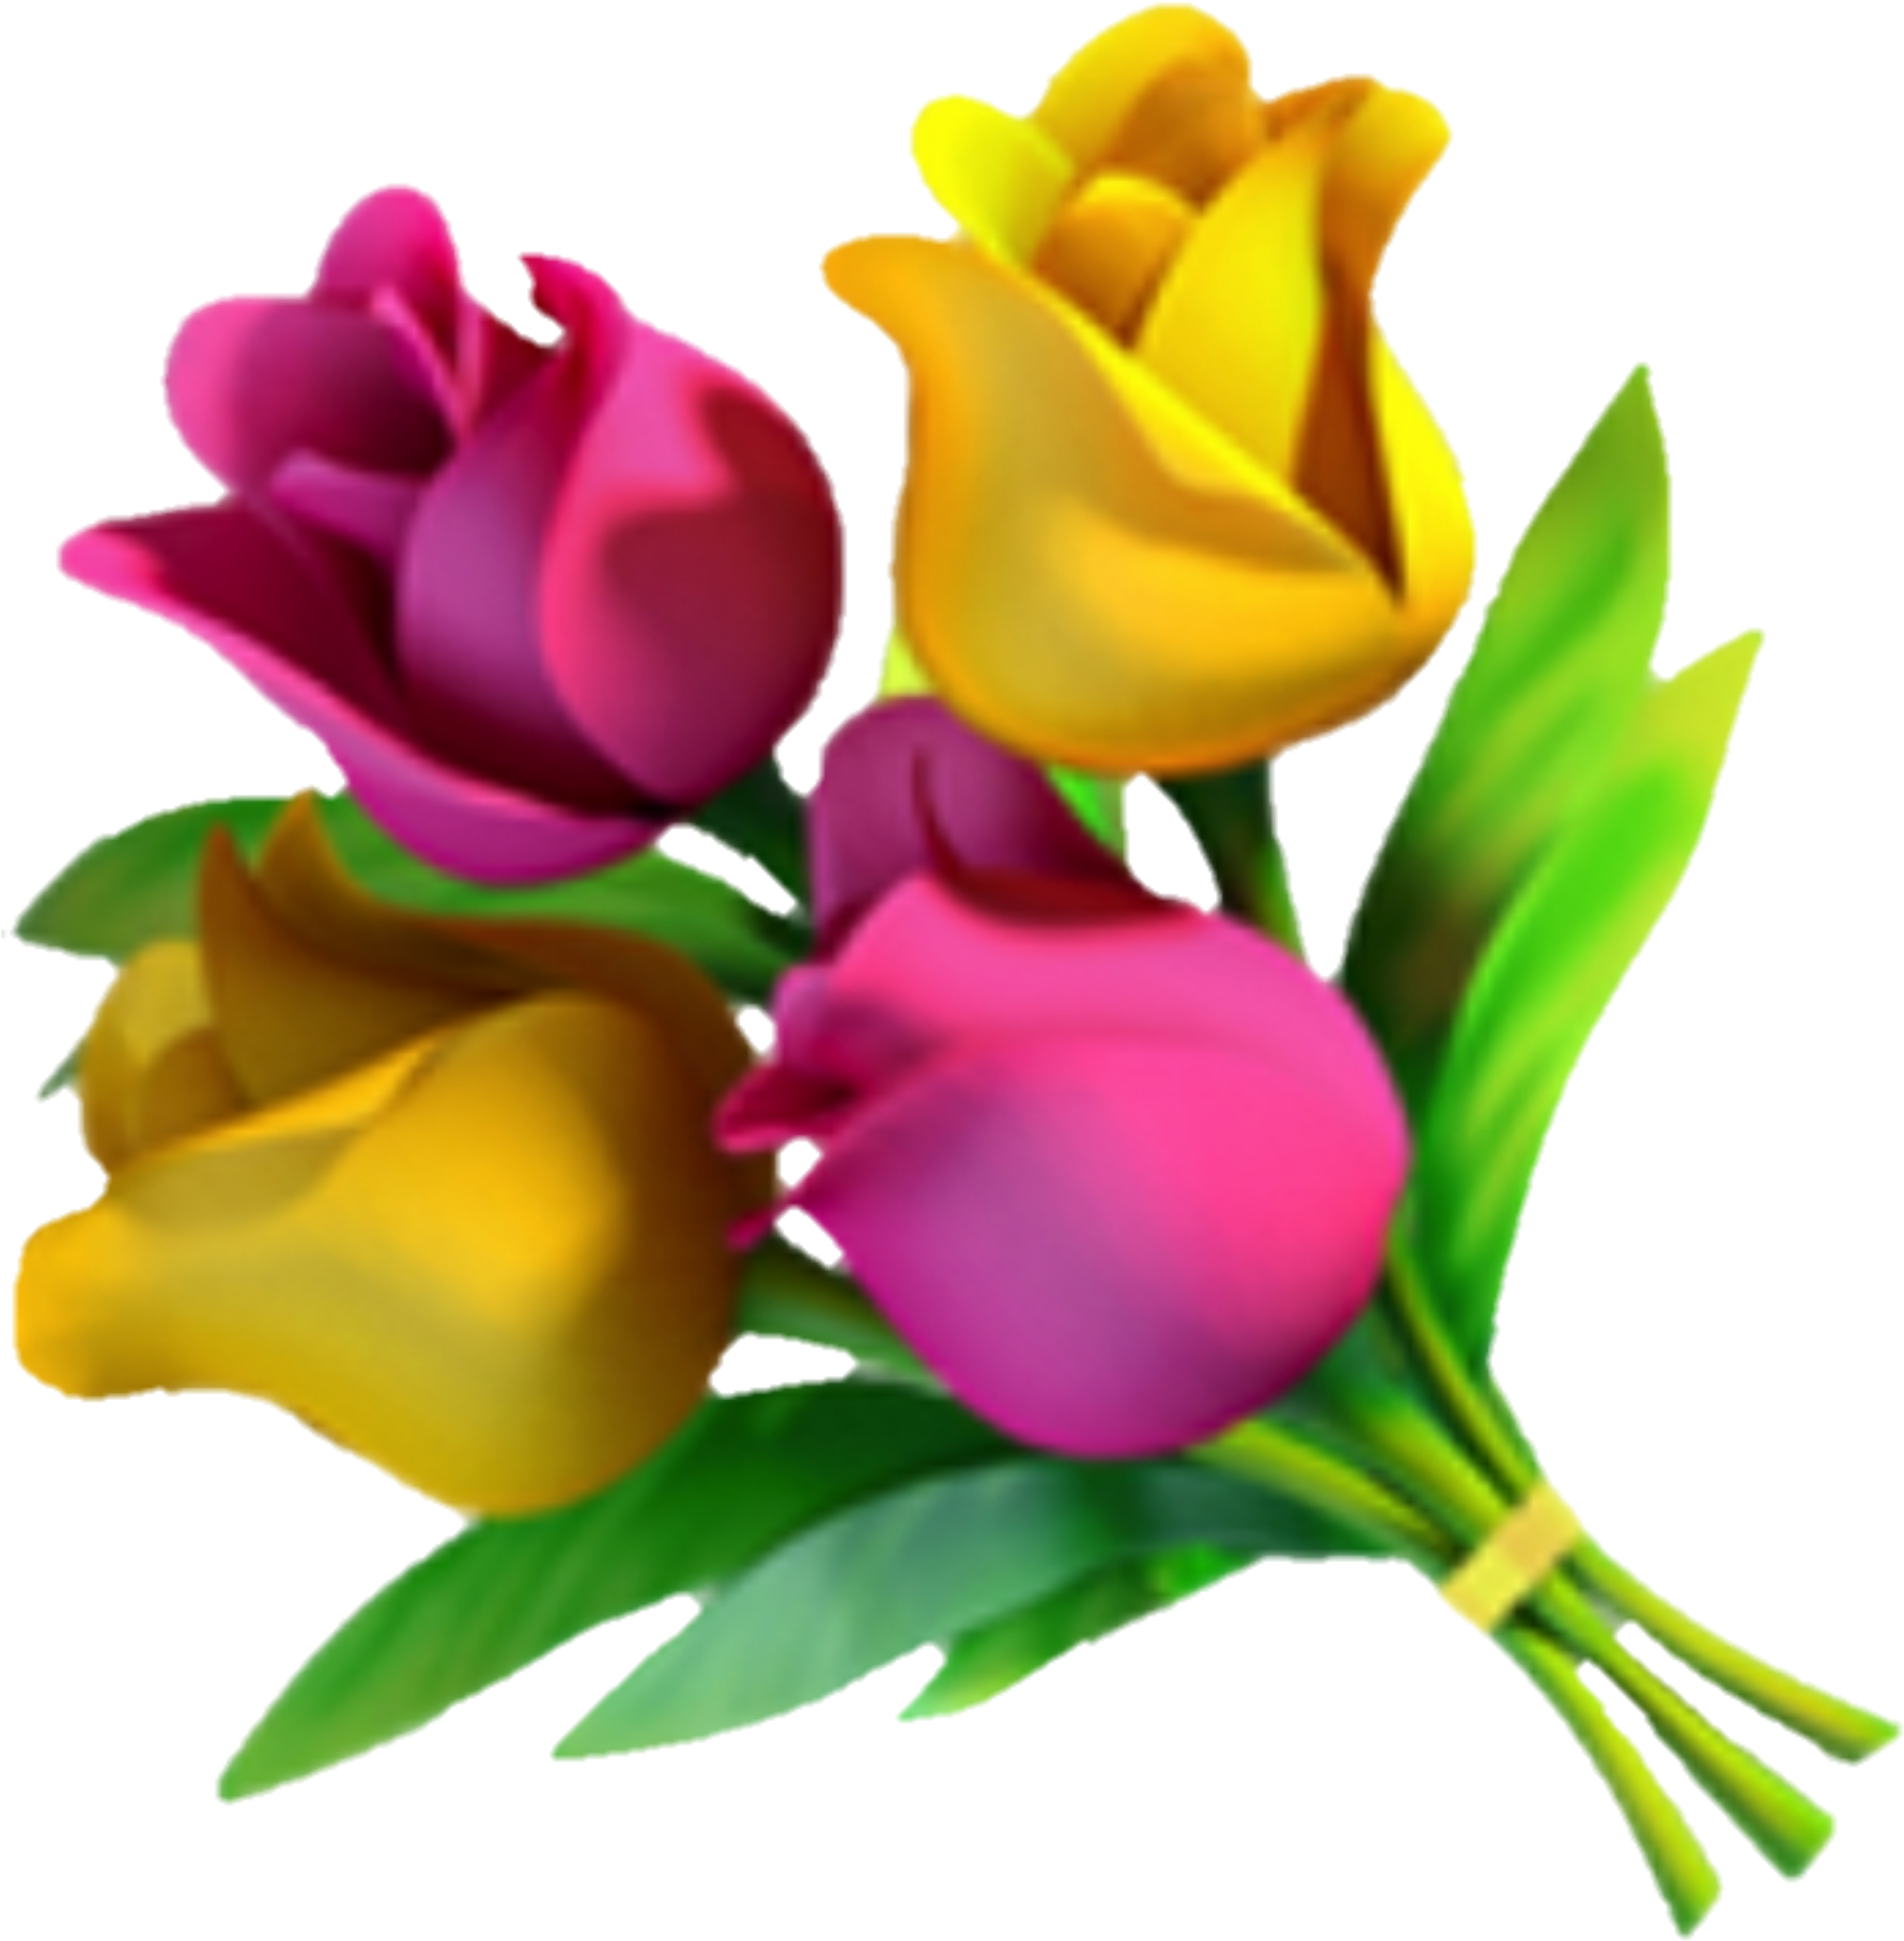 Download Emoji Fleur Flower Flora Rose Jaune Yellow Png Image With